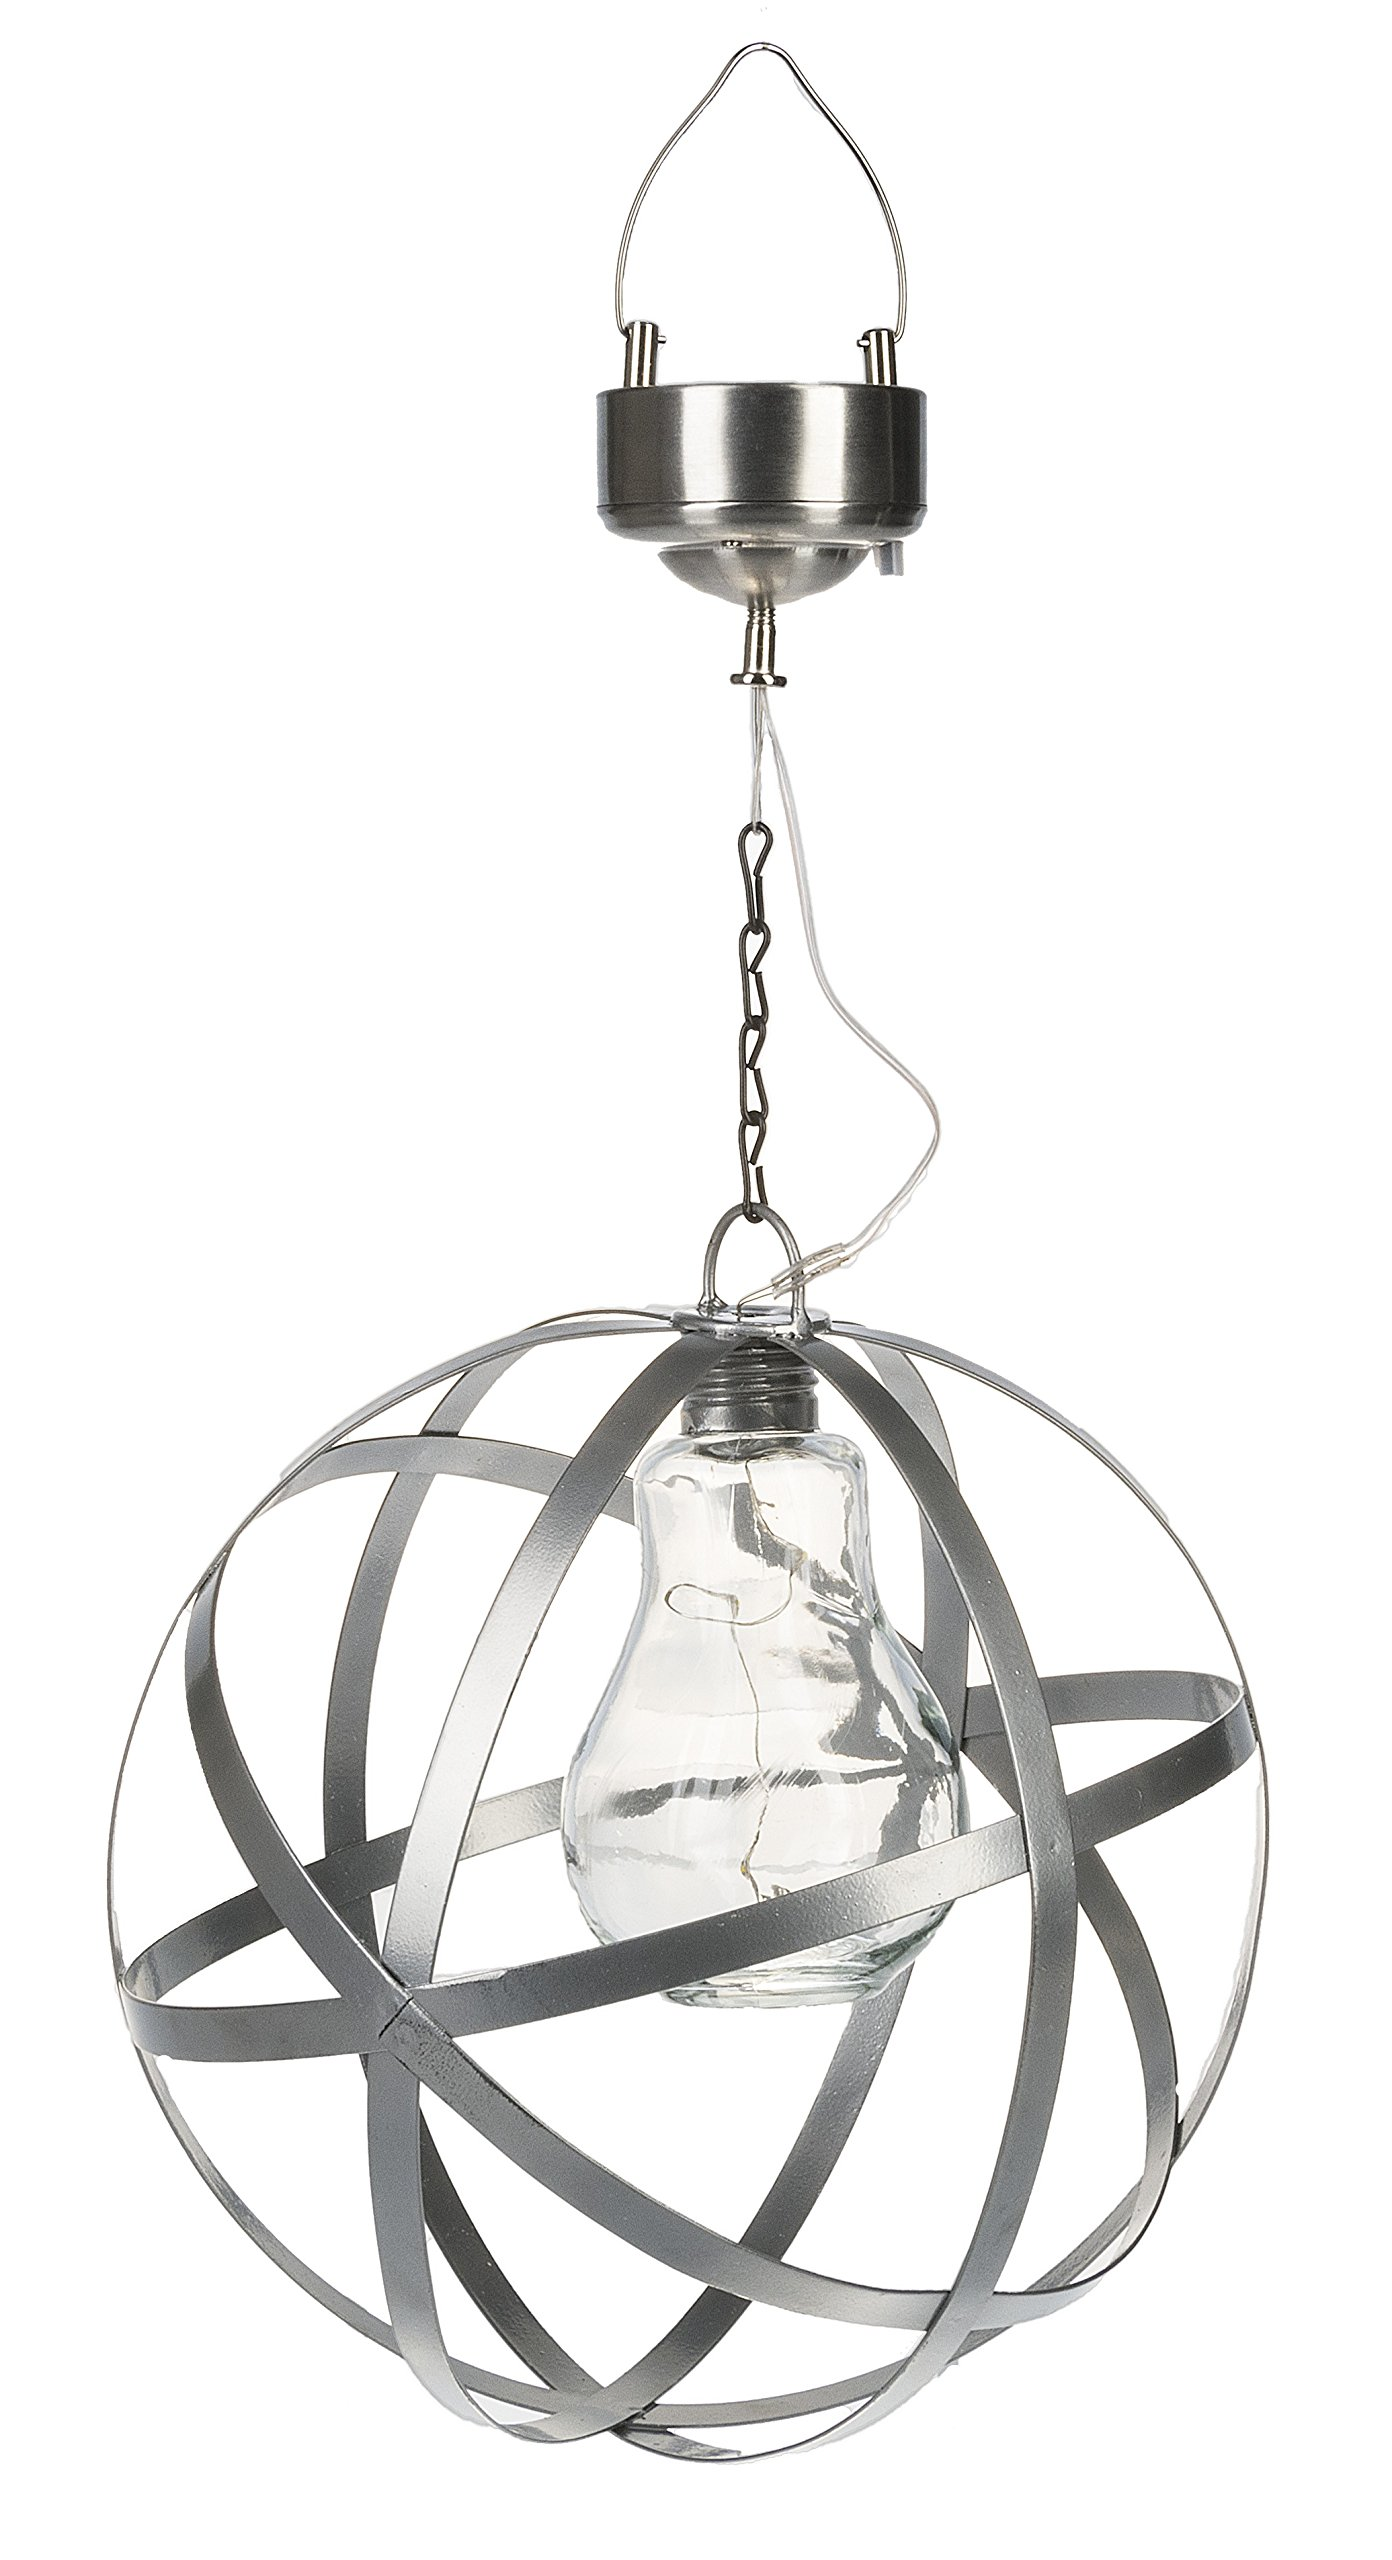 Silver Tone Orb Cage With Solar Panel 8.25 x 14.75 Iron Outdoor Hanging Light by Ganz